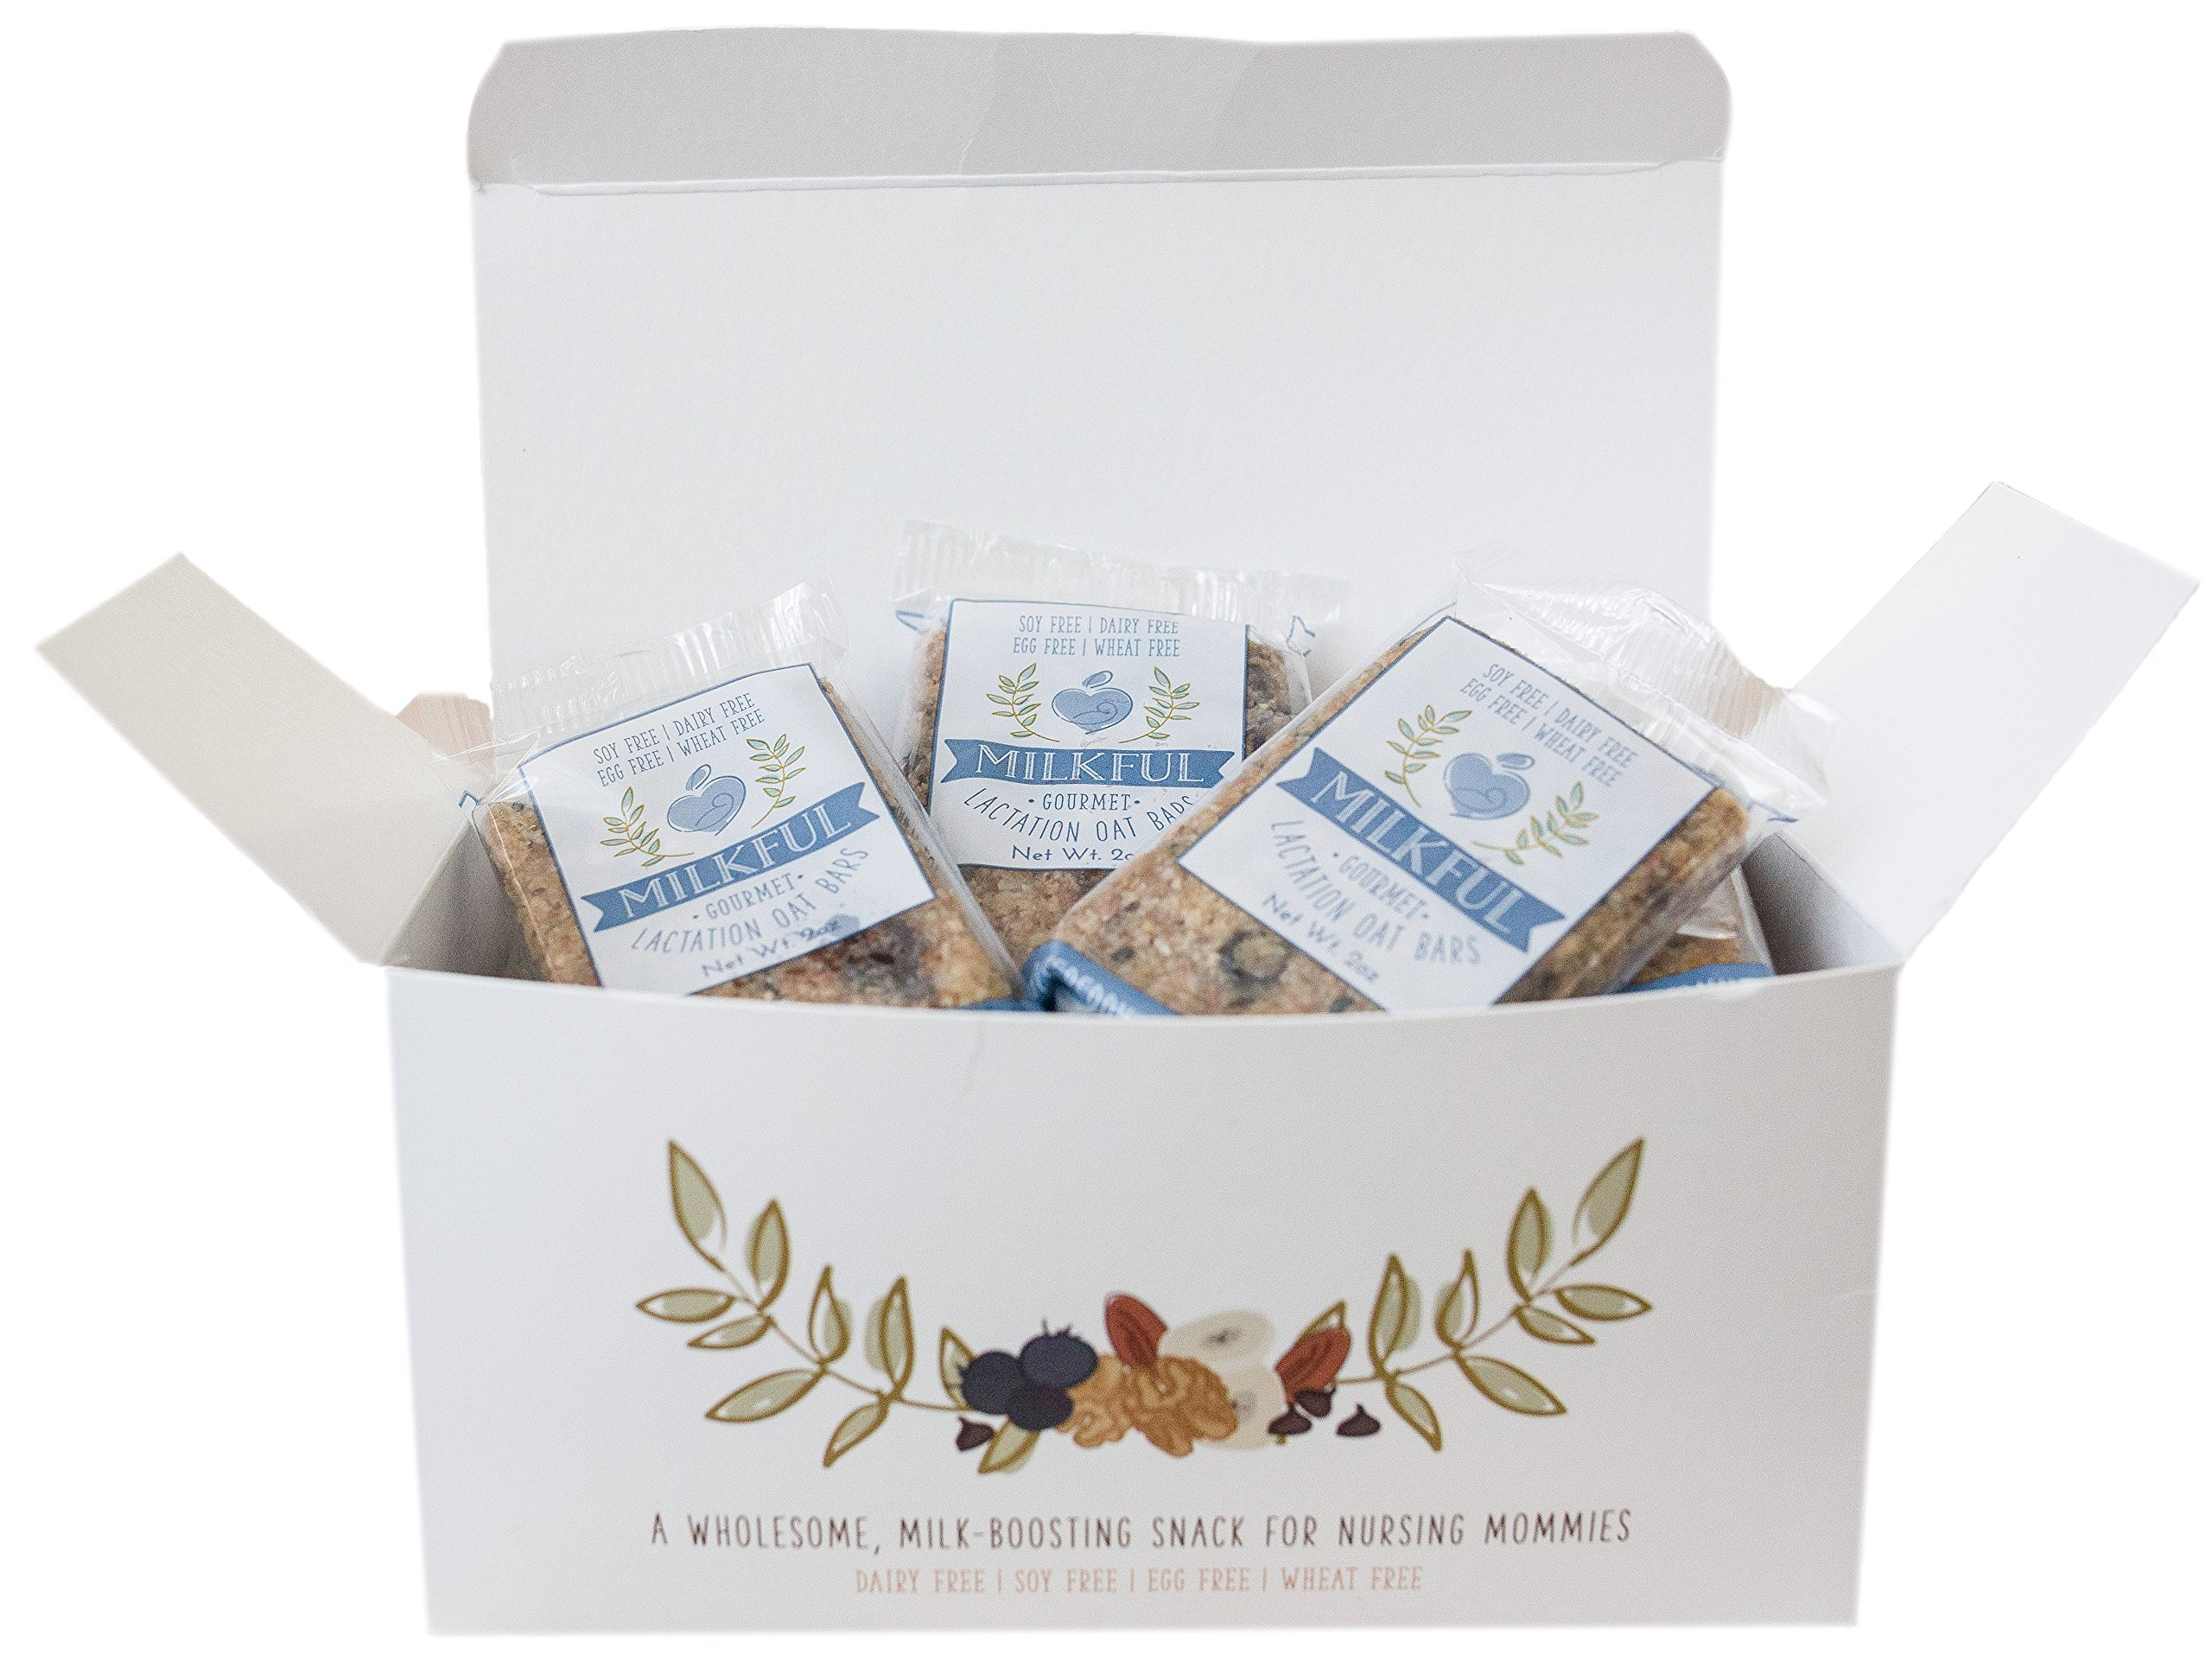 MILKFUL Lactation Bars- Wholesome Alternative to Lactation Cookies for Breastfeeding Moms. Helps Boost Breast Milk Supply.12 Bars. Dairy Free, Egg Free, Soy Free, Wheat Free (Blueberry Almond Coconut) by MILKFUL  (Image #1)